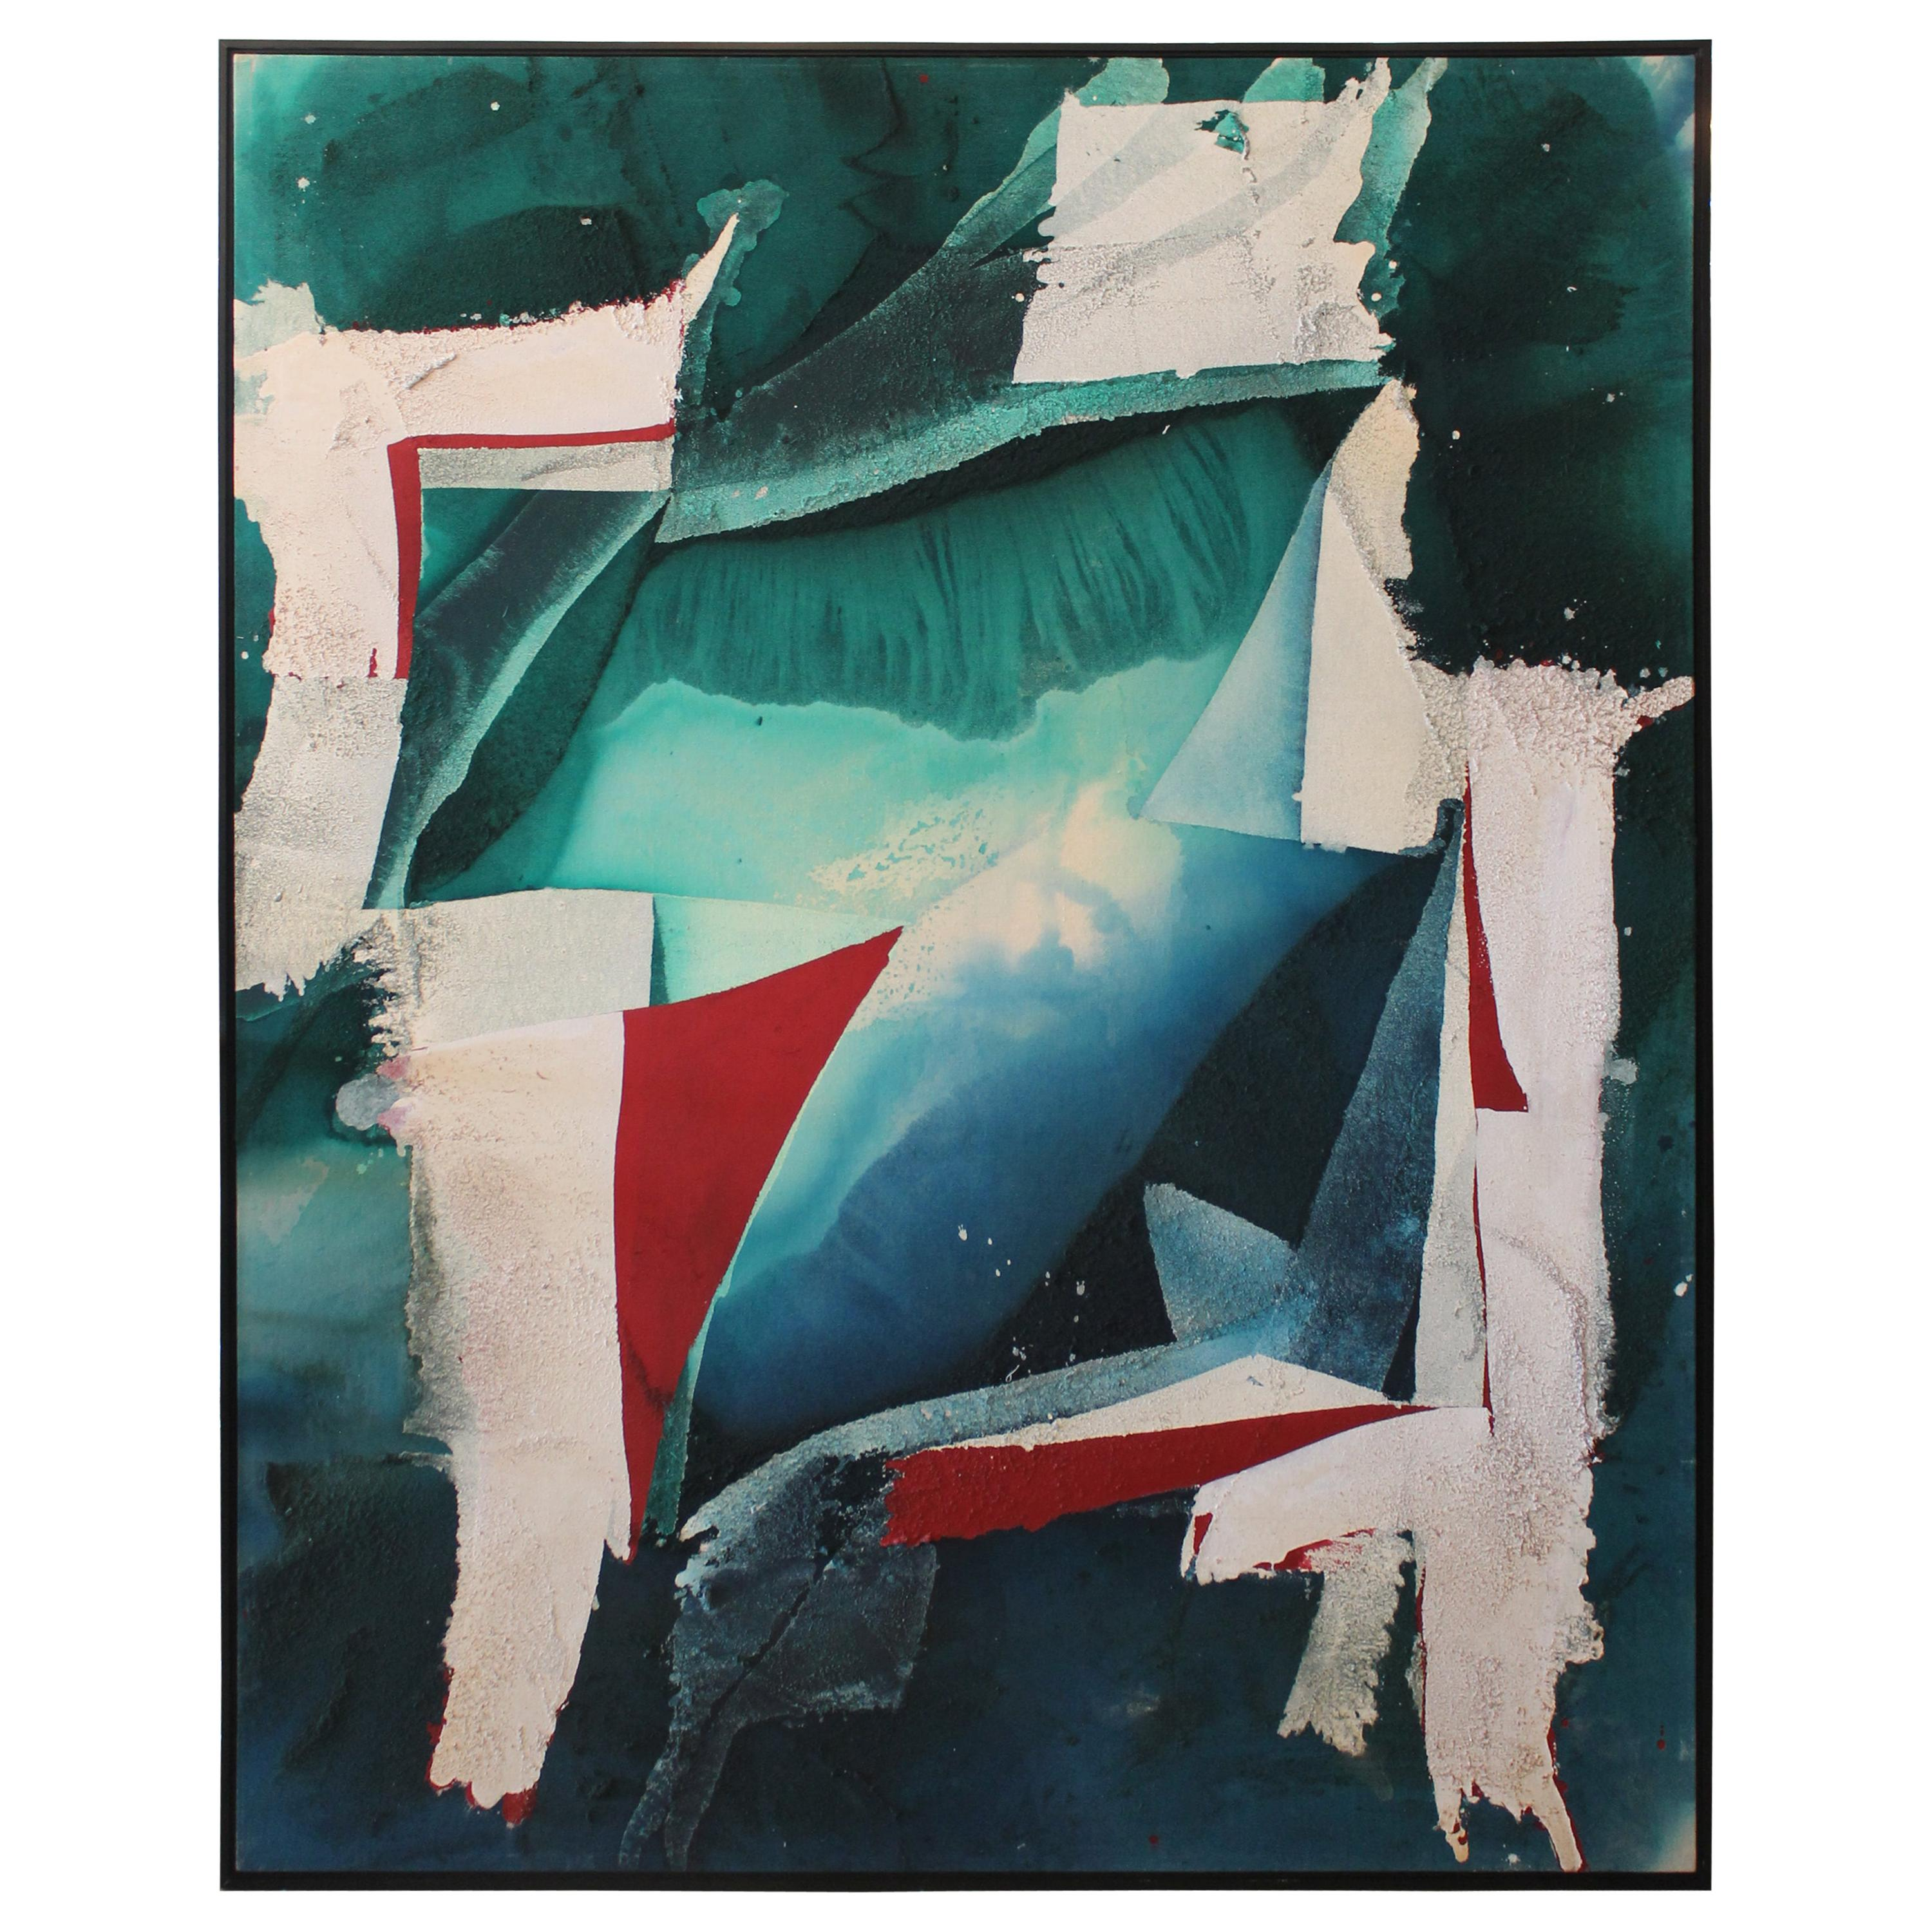 Abstract Painting by Michael Ashcraft, Titled Pleiade, 1989